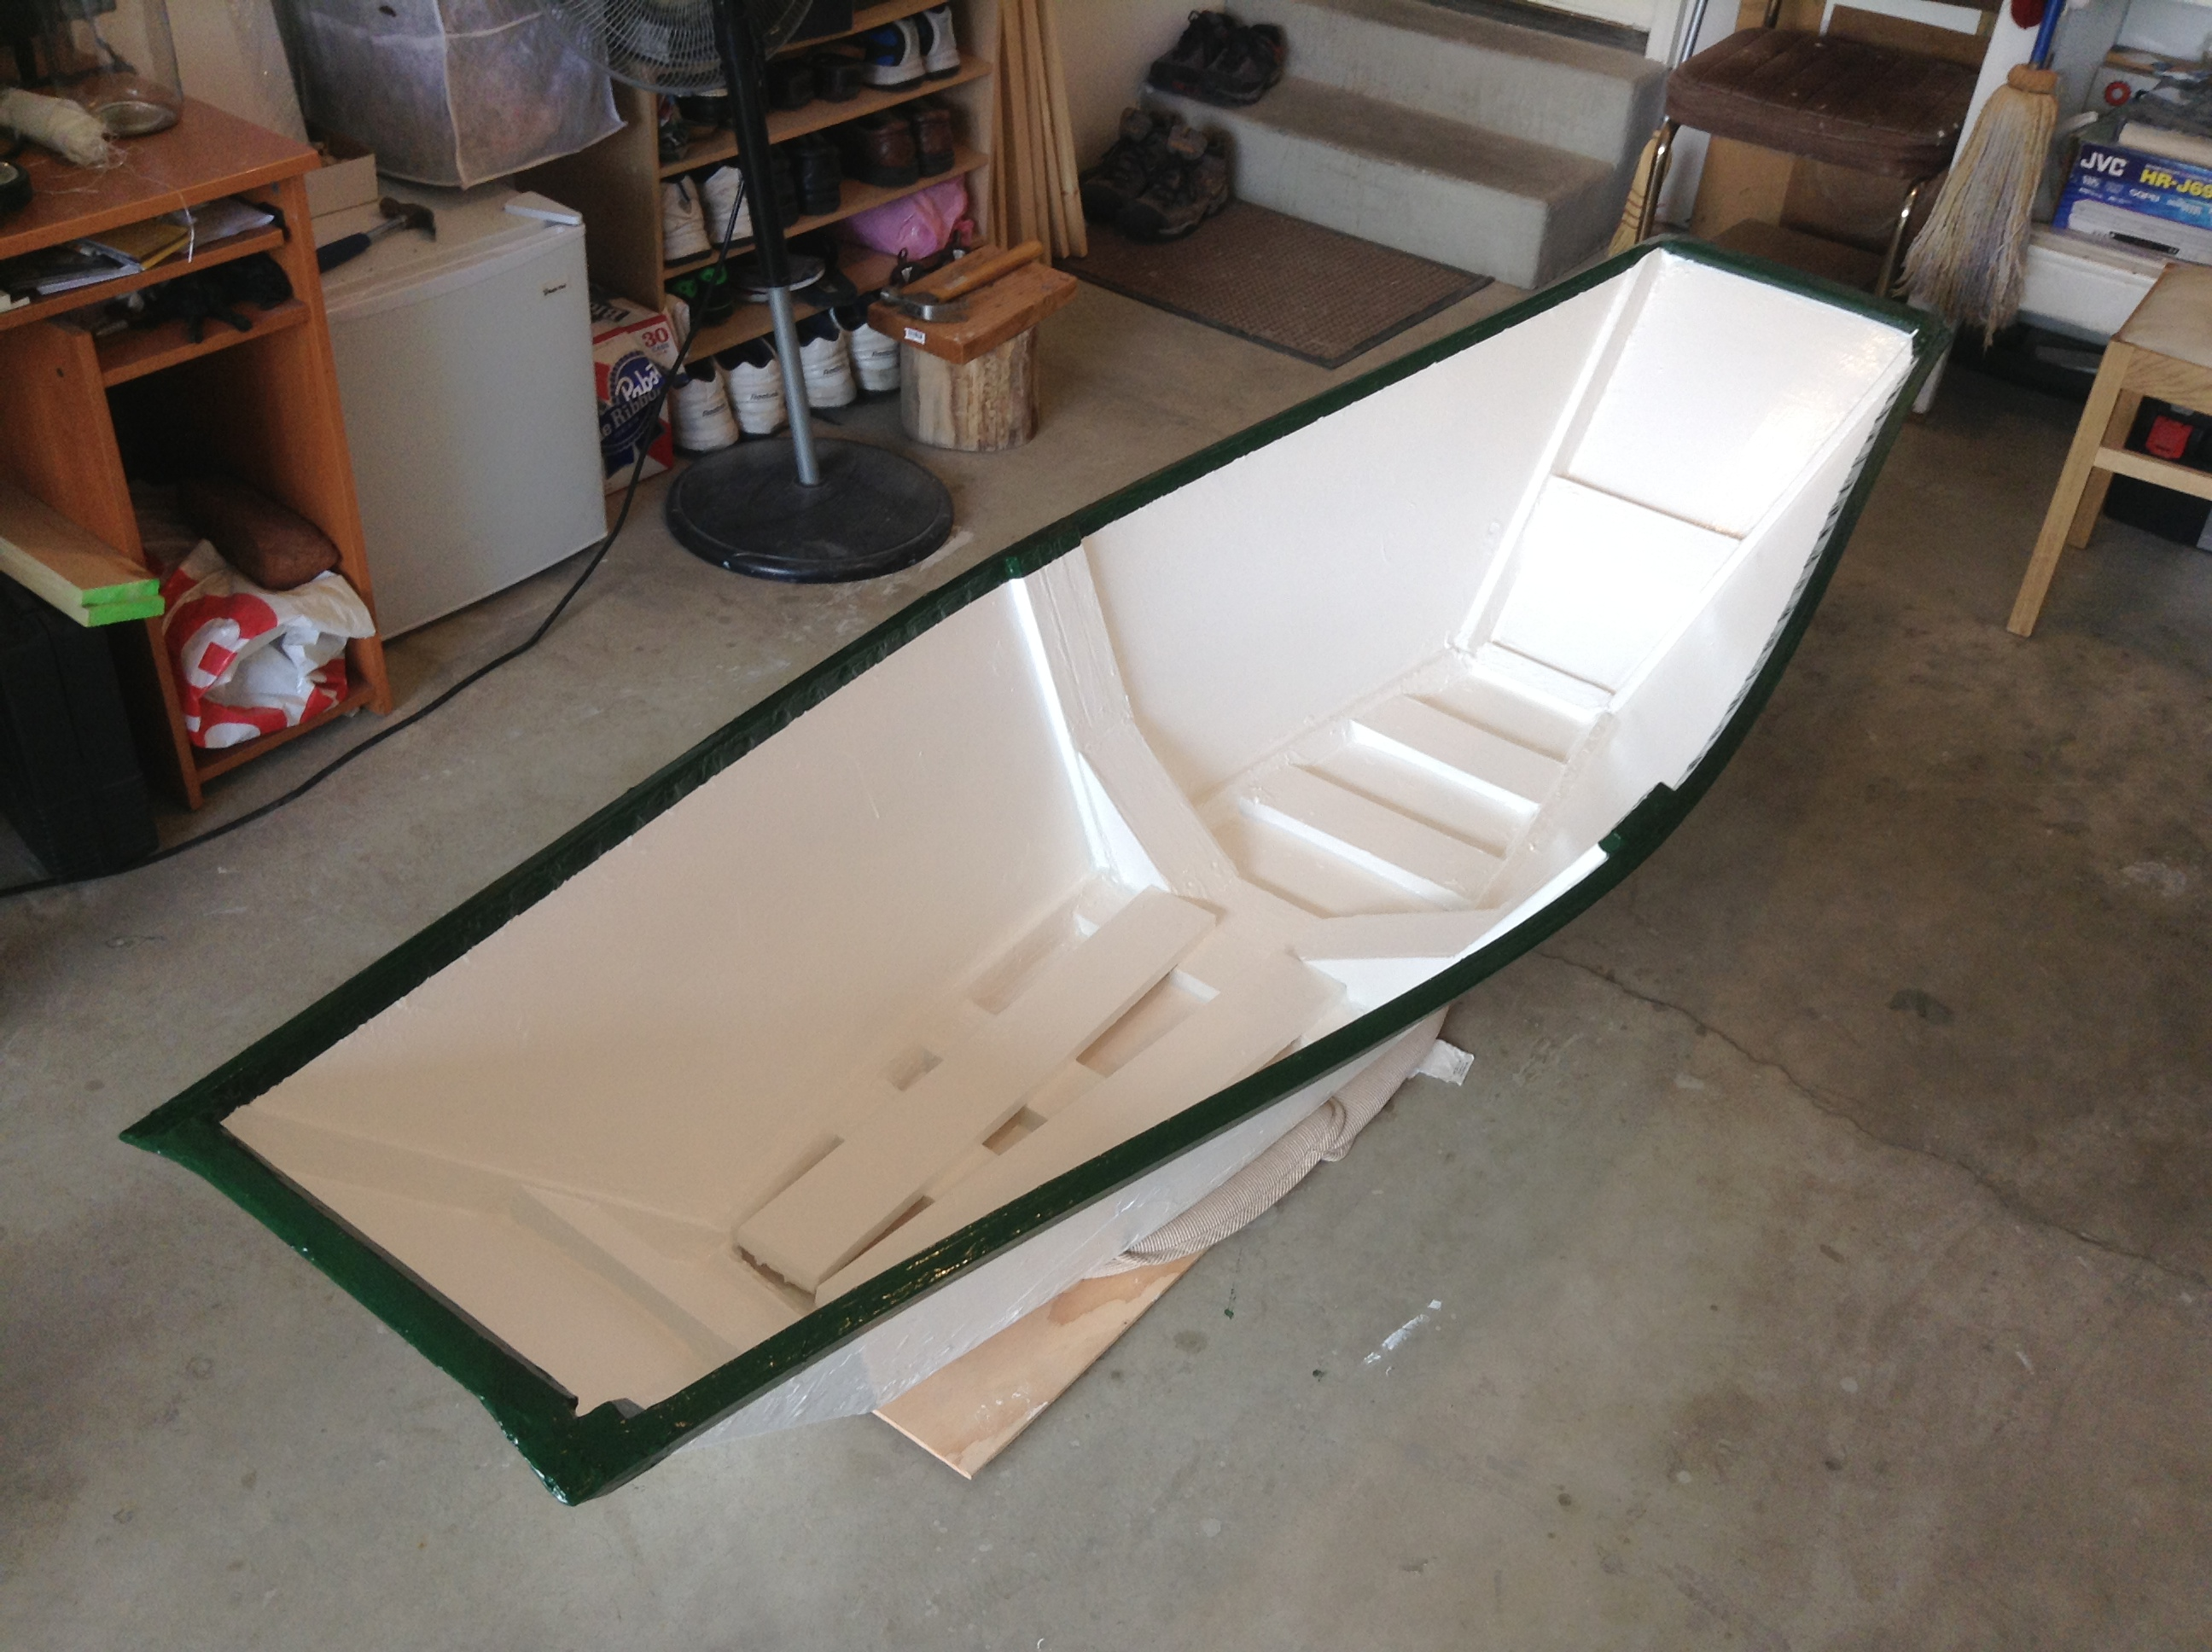 Cheap One-and-a-half Sheet Plywood Boat